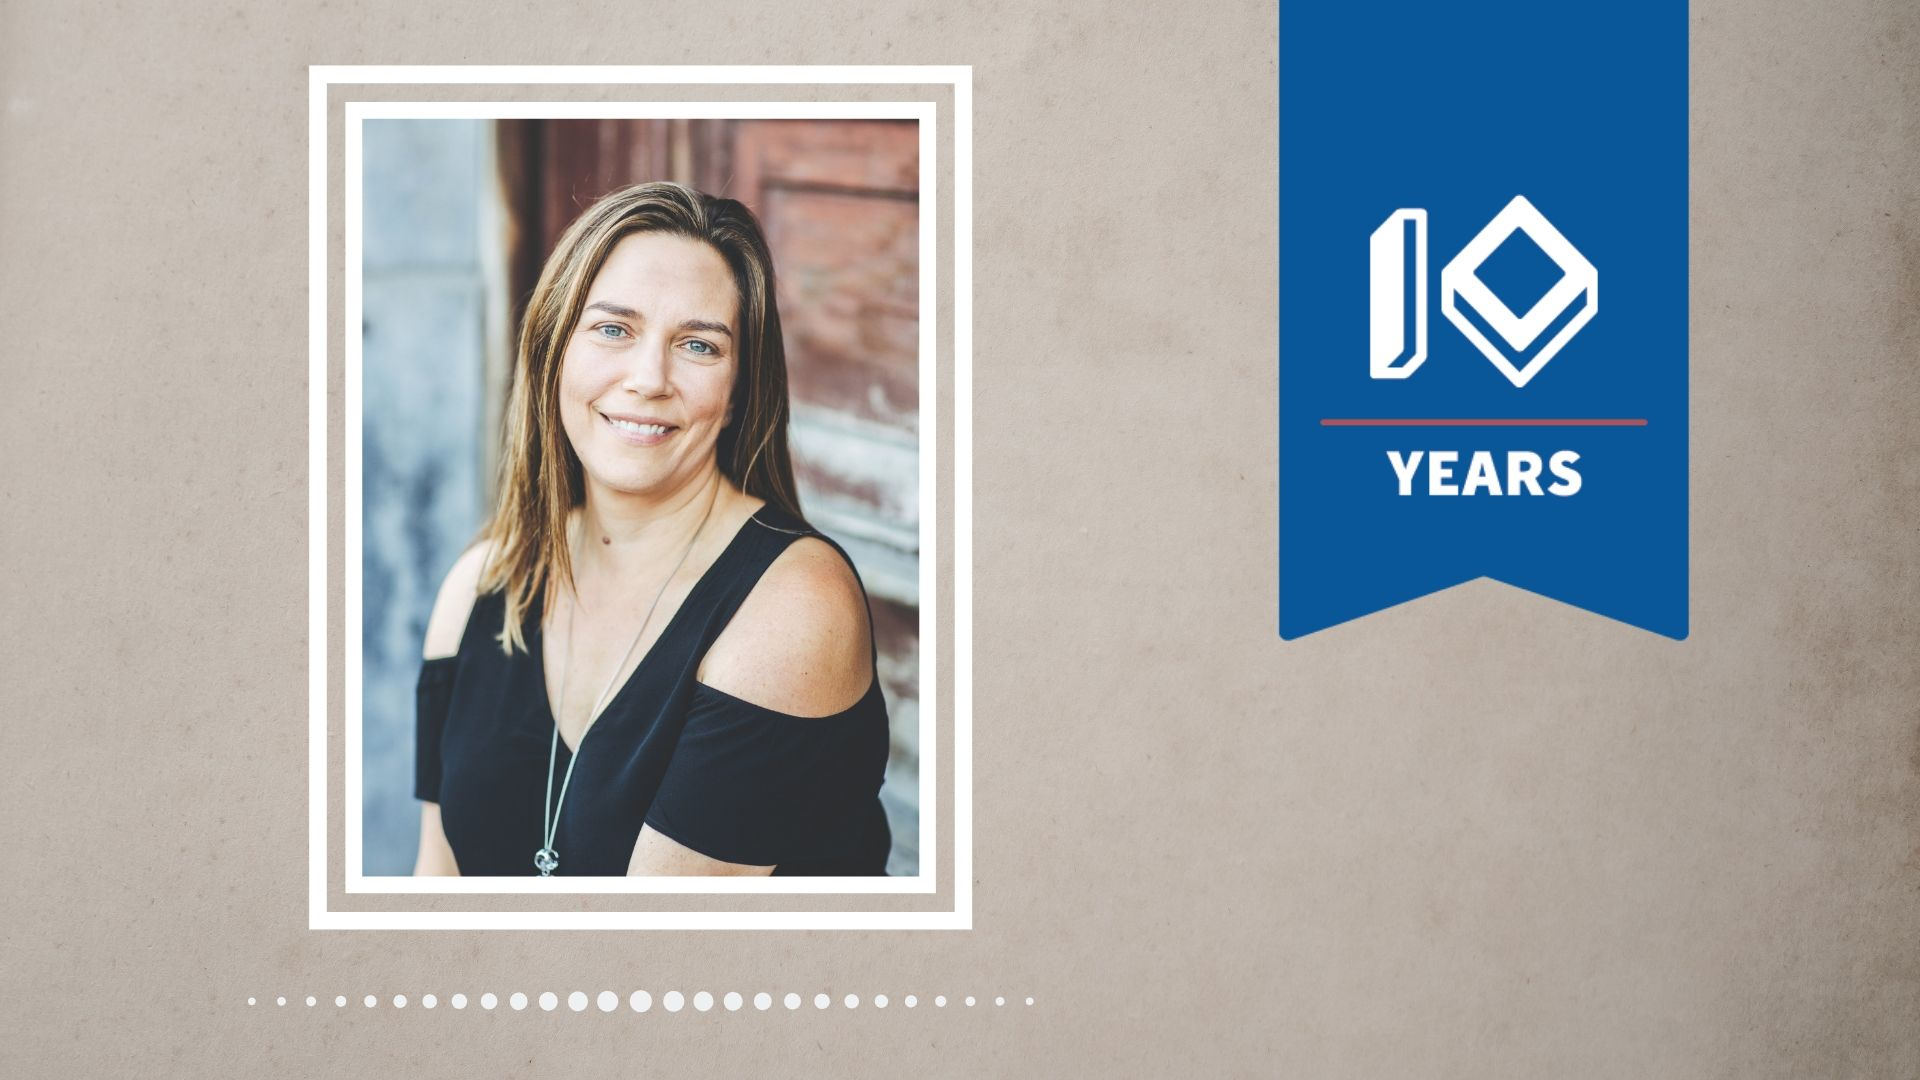 On 10 Years in Self-Publishing with President Tammara Kennelly